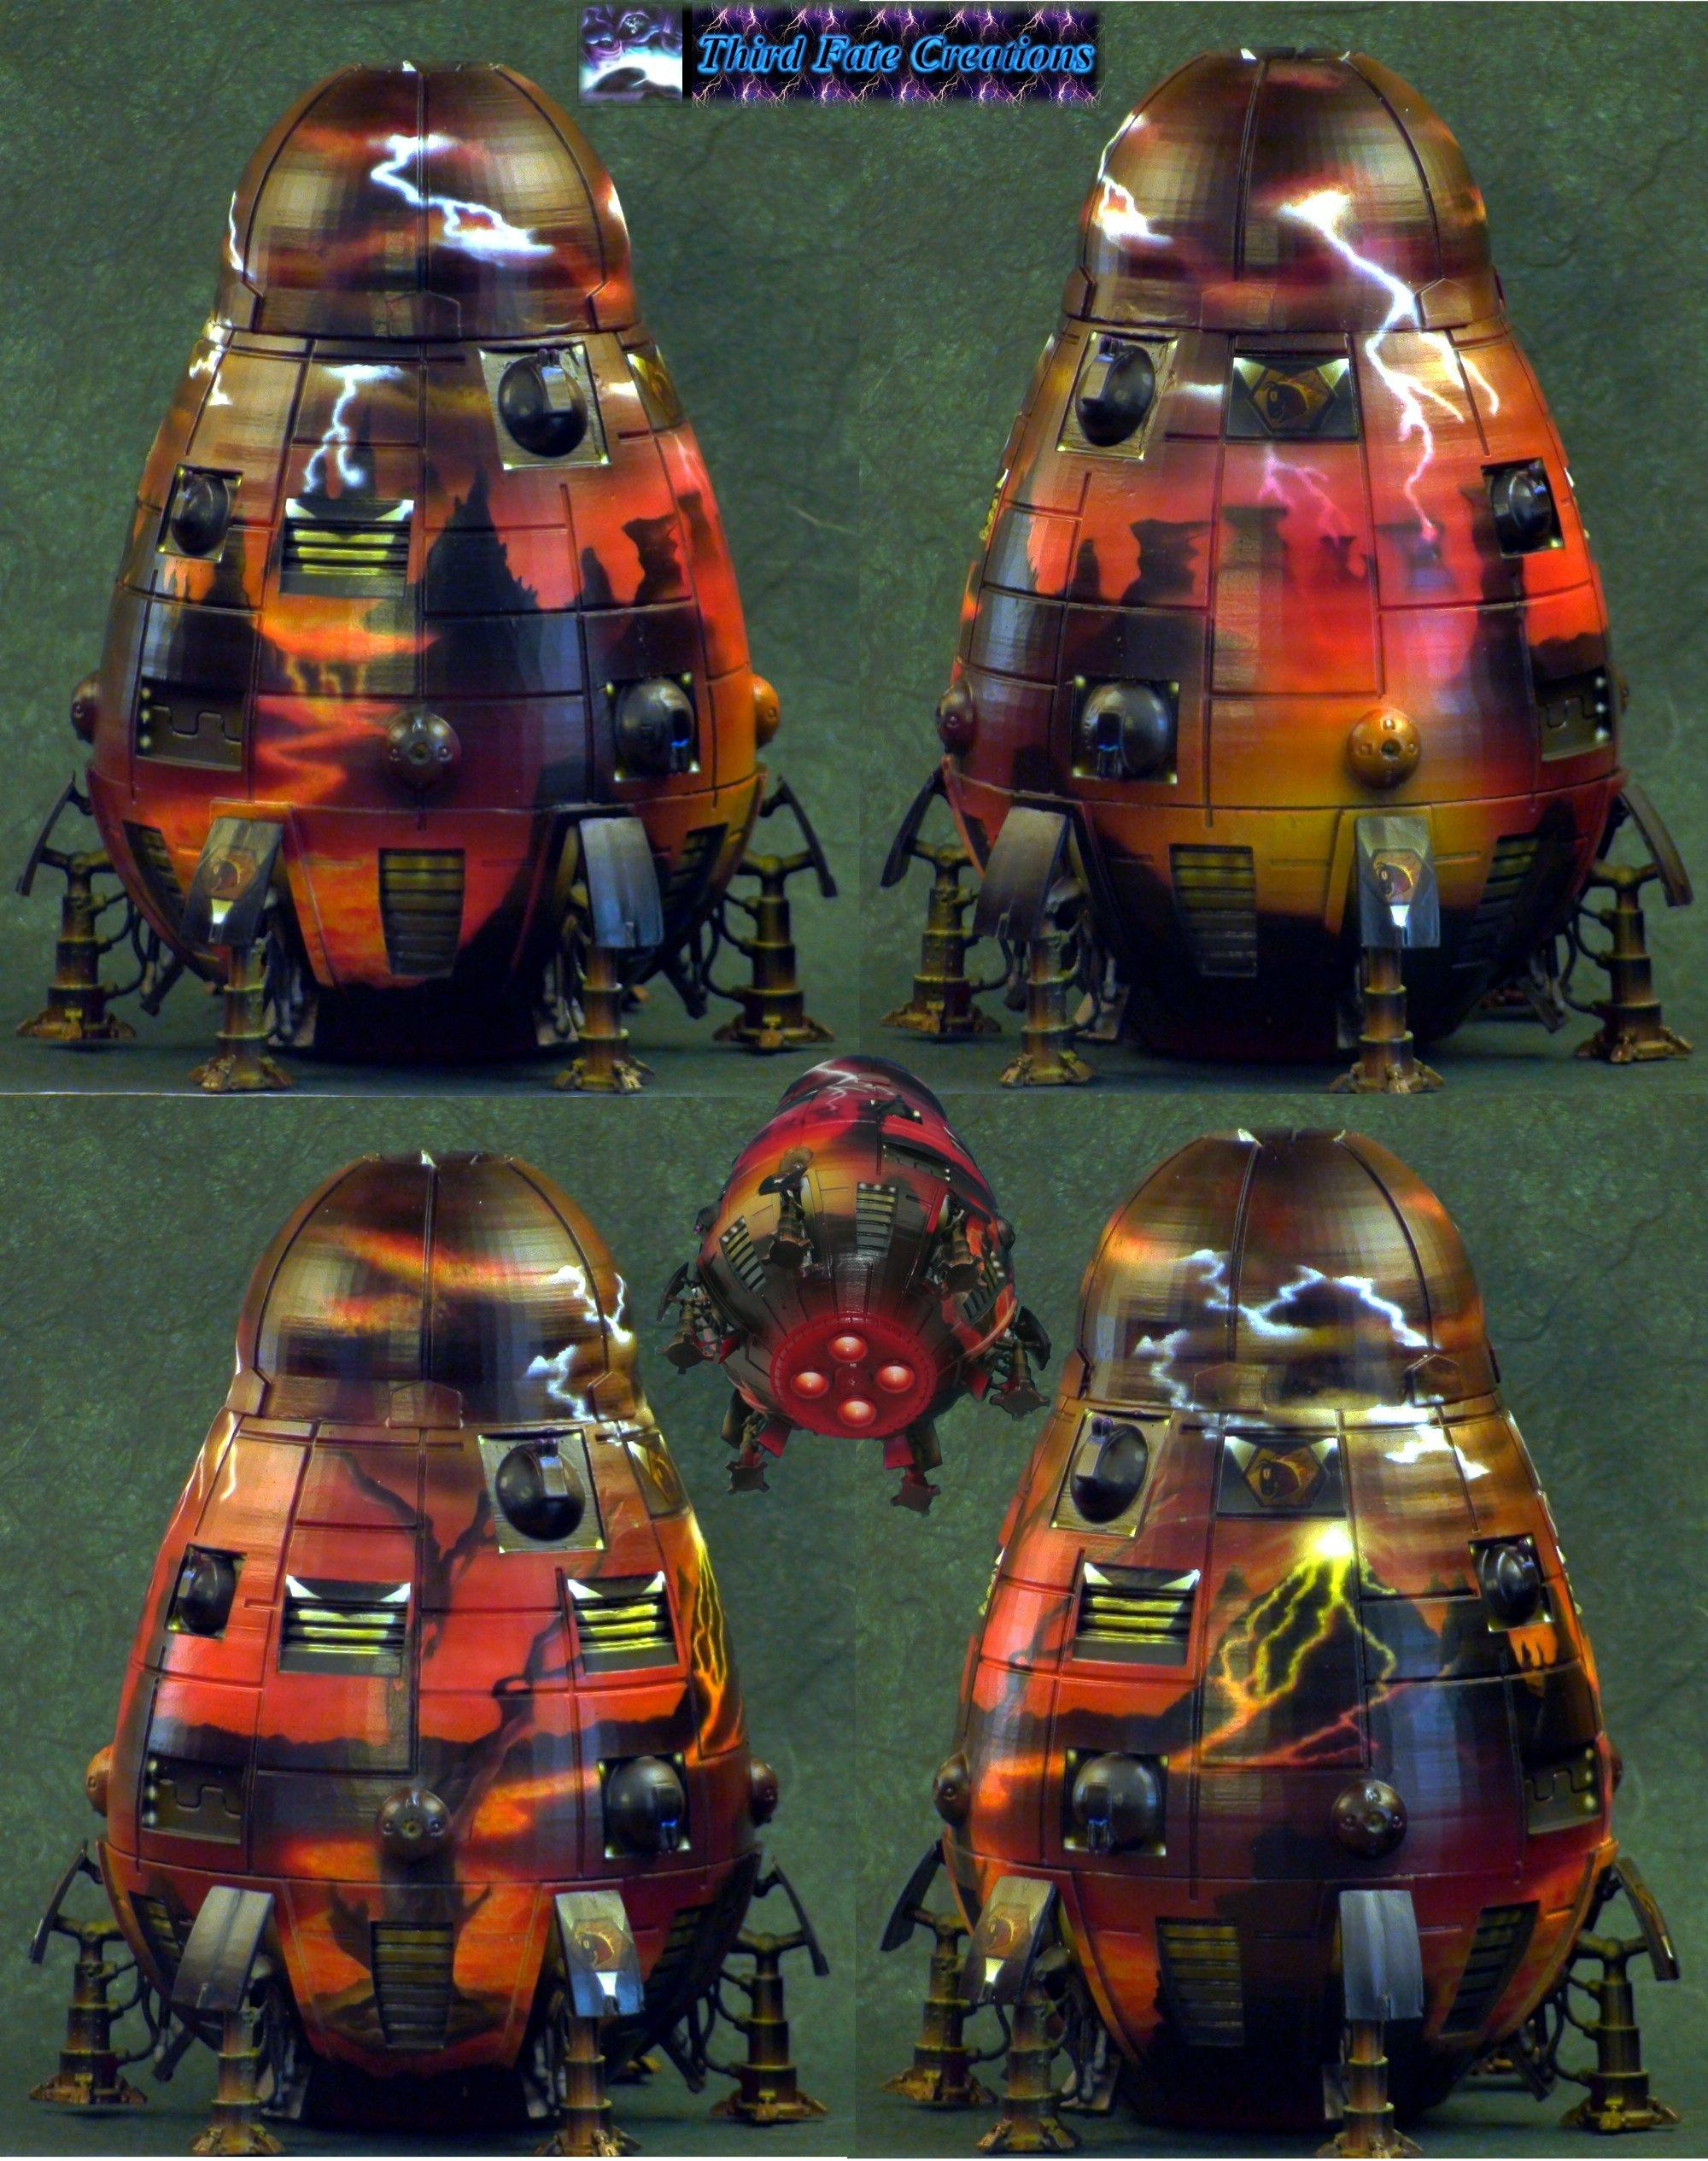 Airbrushed, Battletech, Clan, Dropship, Hells Horses, Map, Overlord, Scale